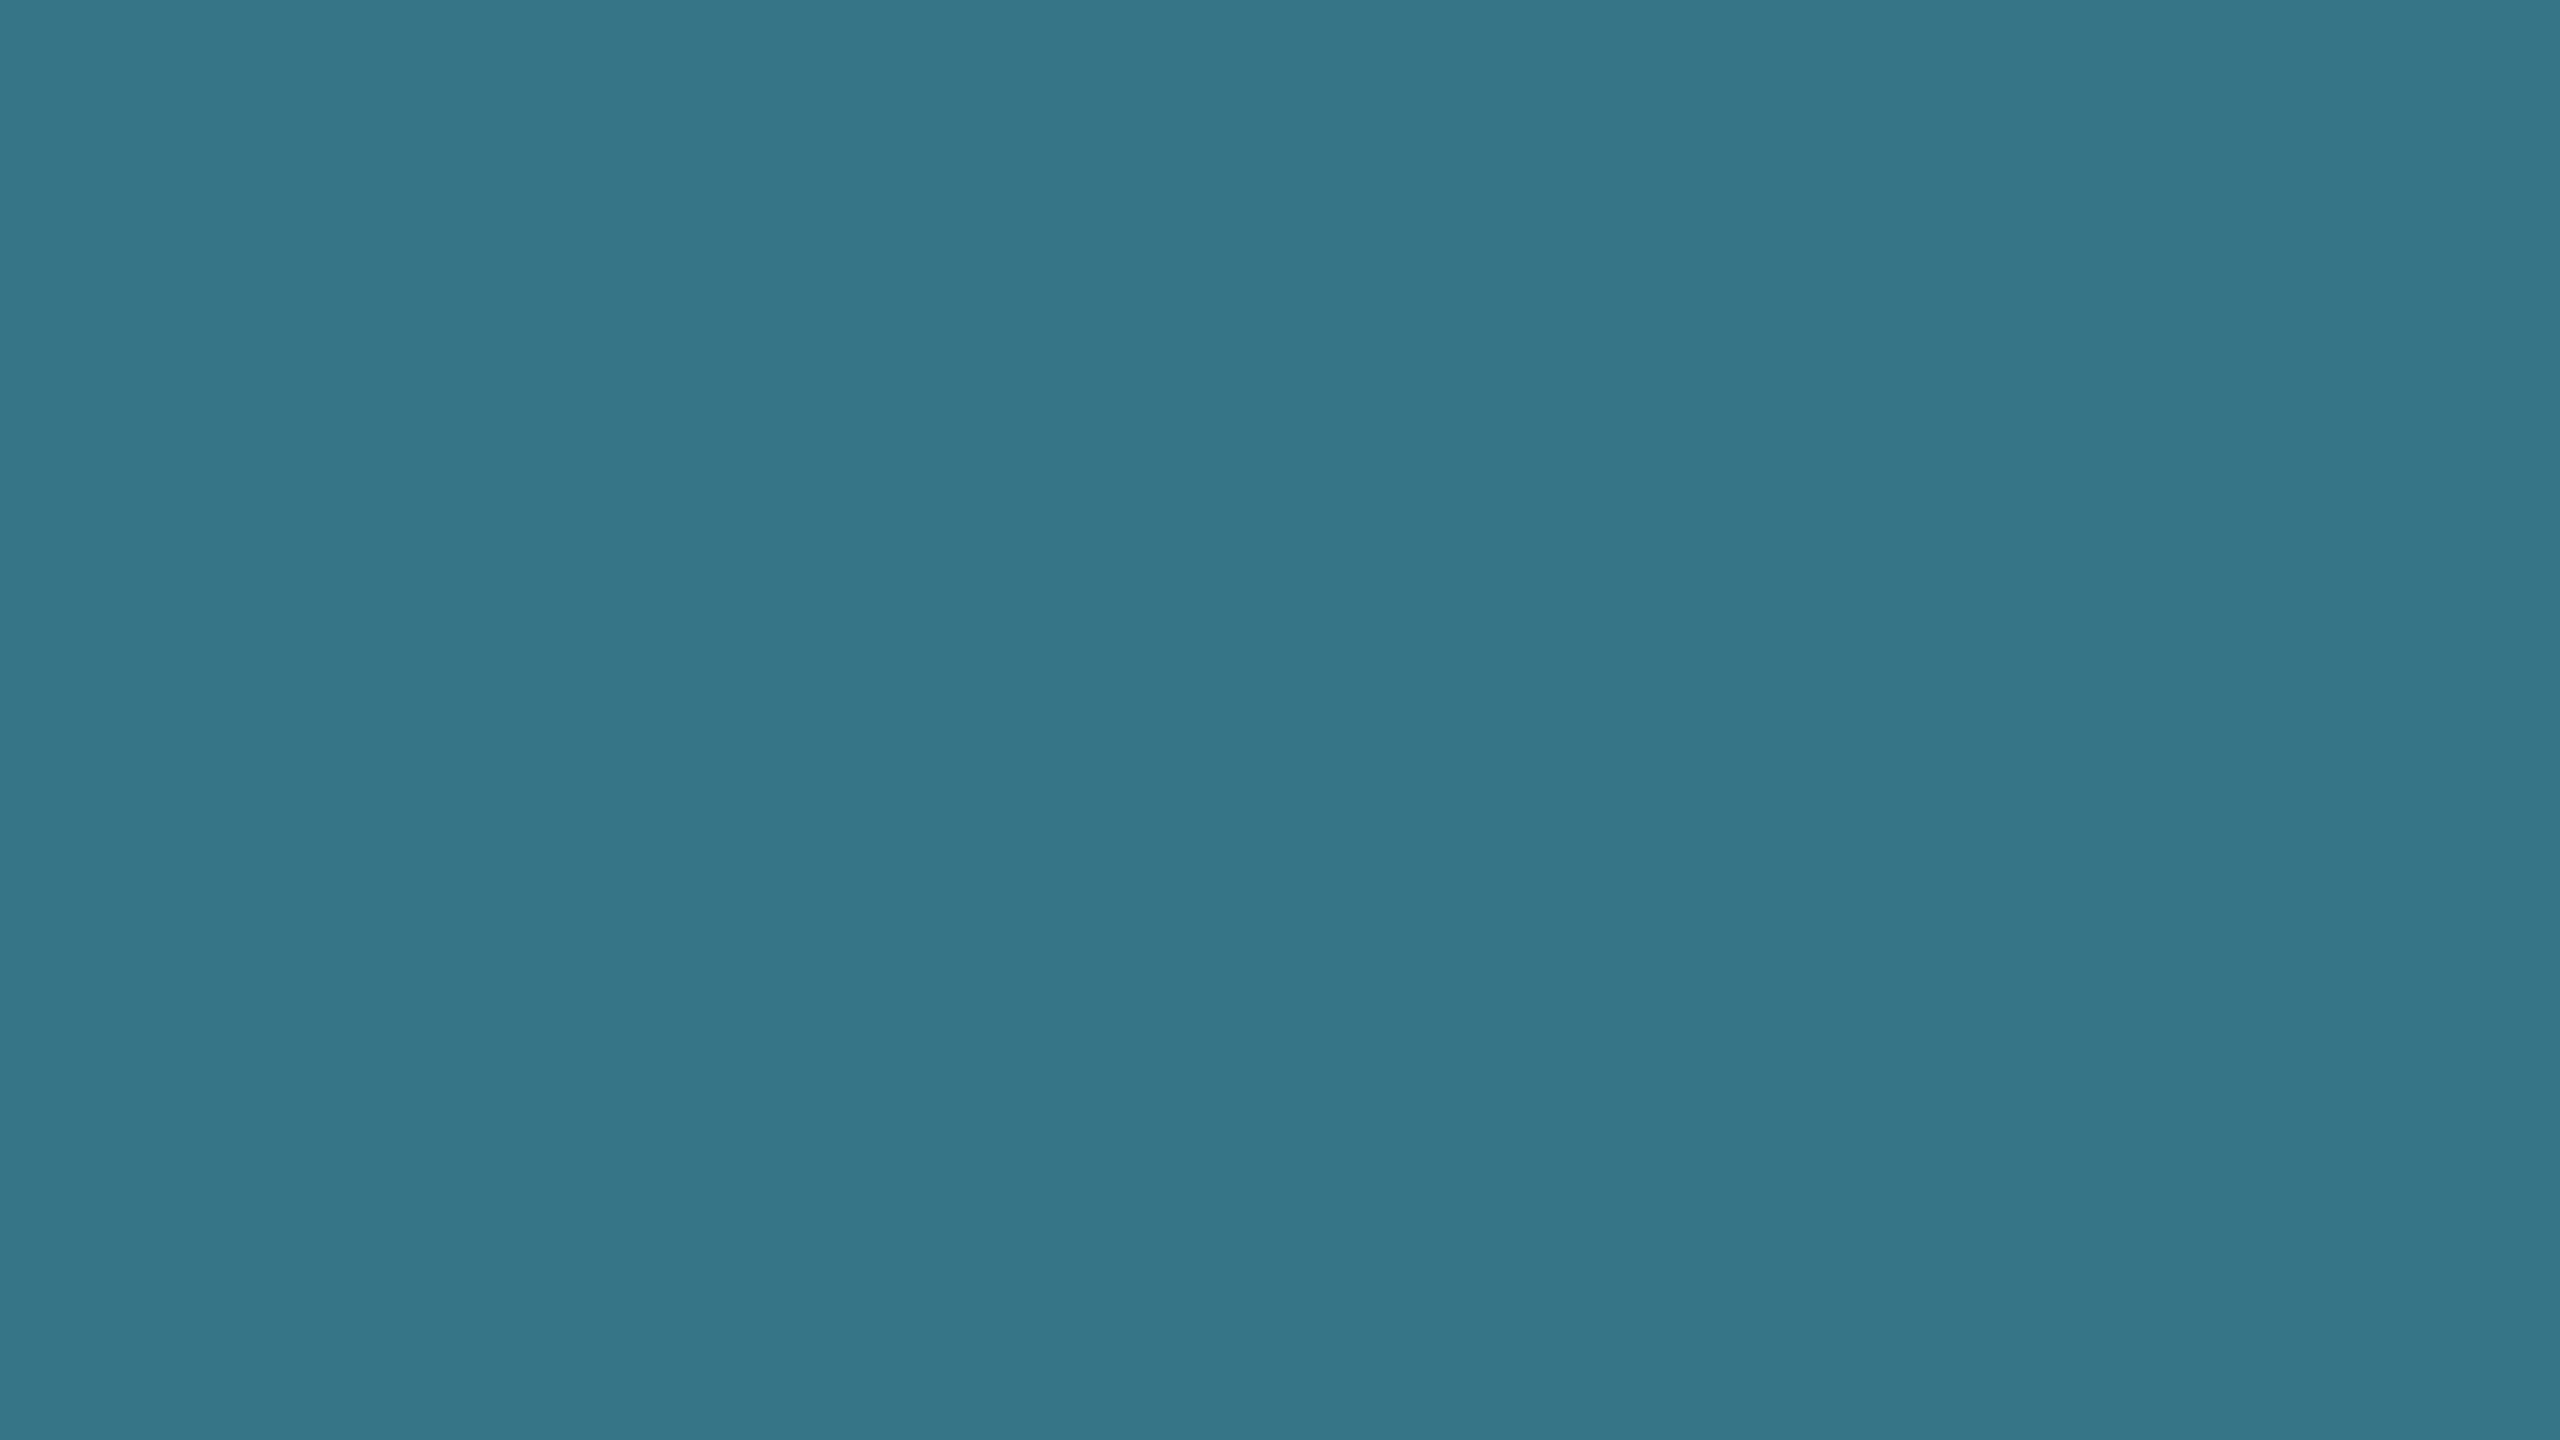 Teal Blue Wallpaper 2017 Grasscloth Wallpaper